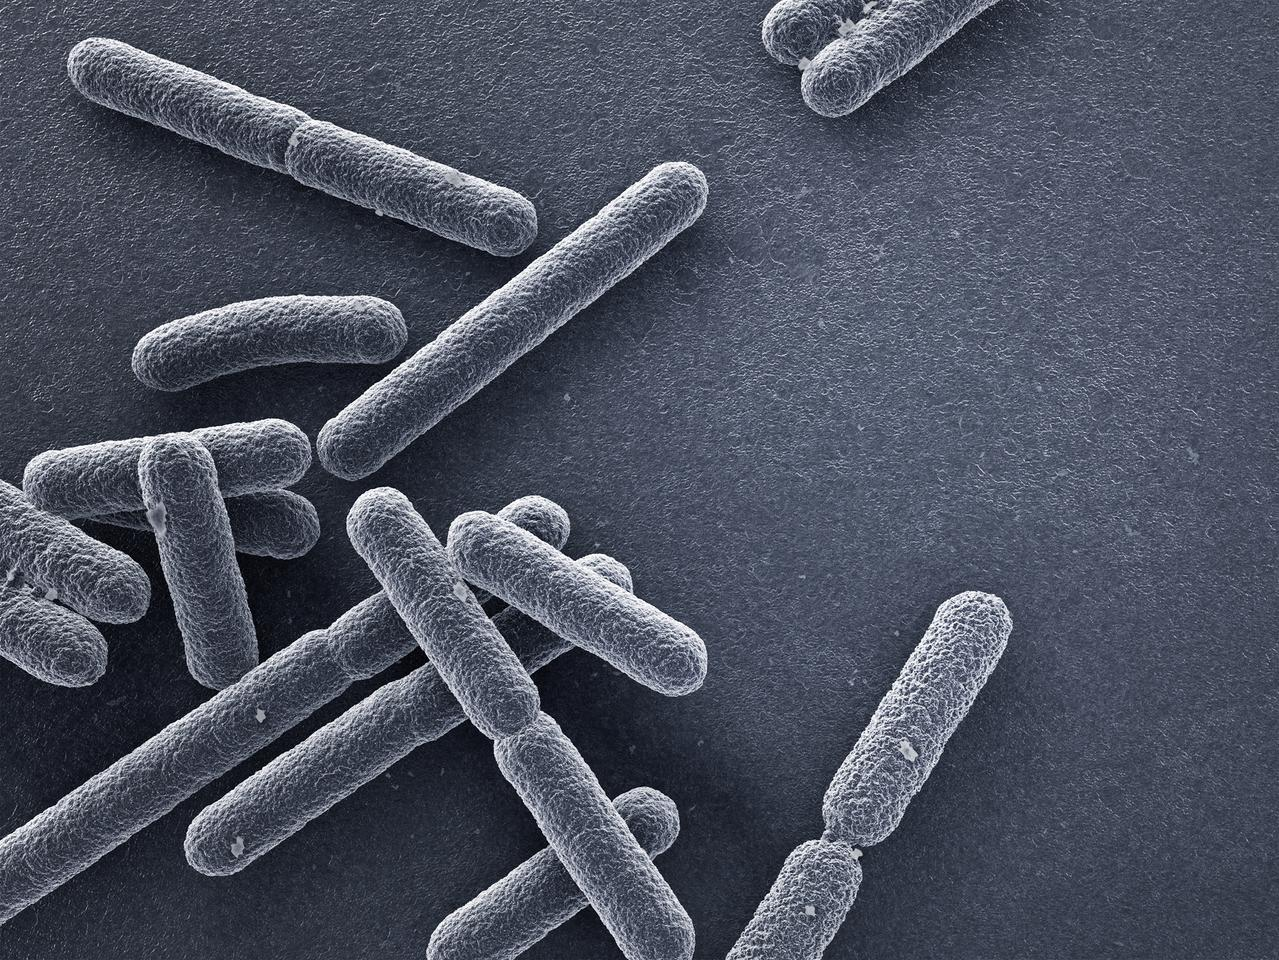 Researchers have uncovered a new mechanism for killing antibiotic-resistant gram-negative bacteria such as E. coli